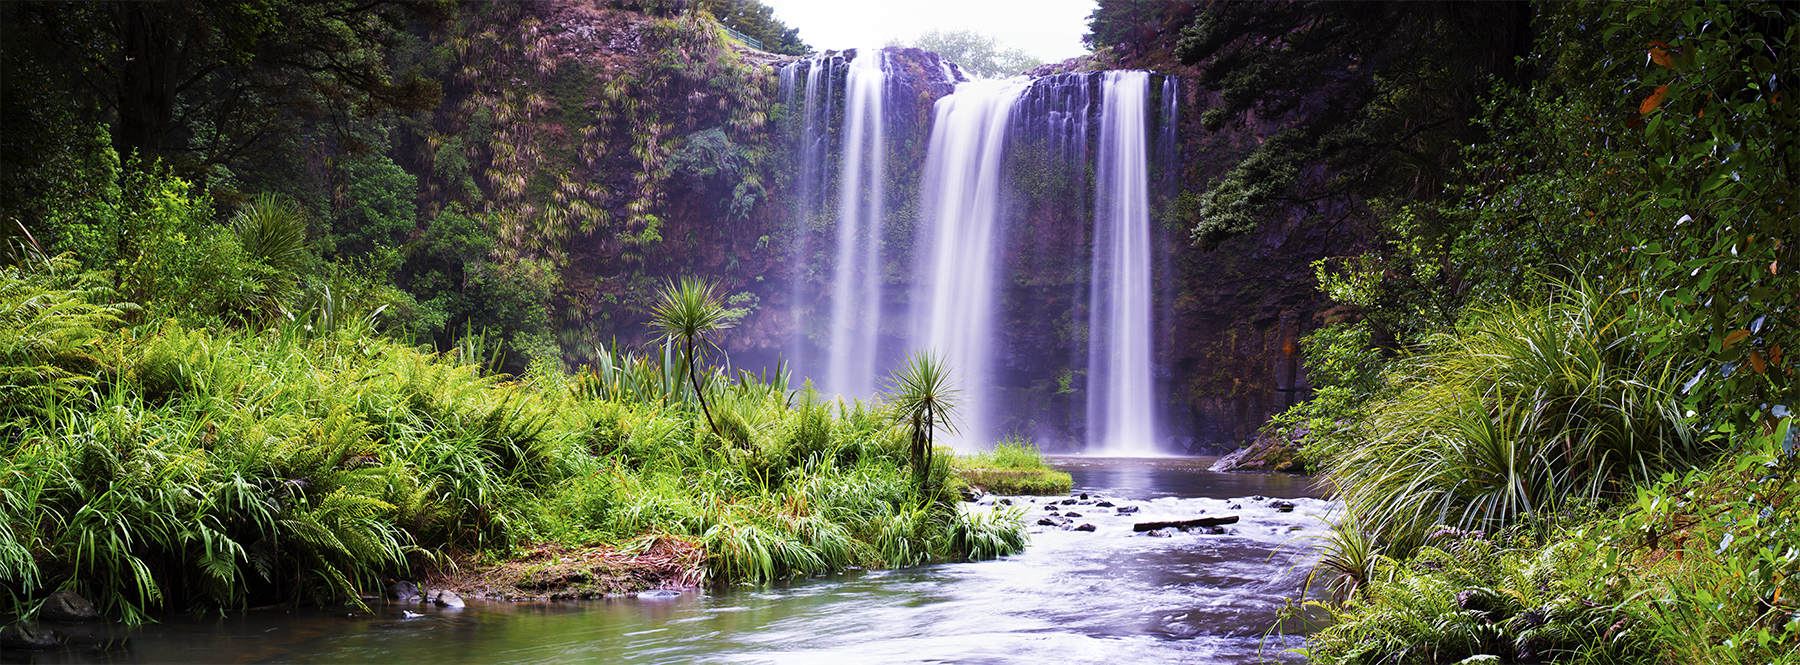 Whangarei Falls, Northland, New Zealand. A Limited Edition Fine Art Landscape Photograph by Richard Hume